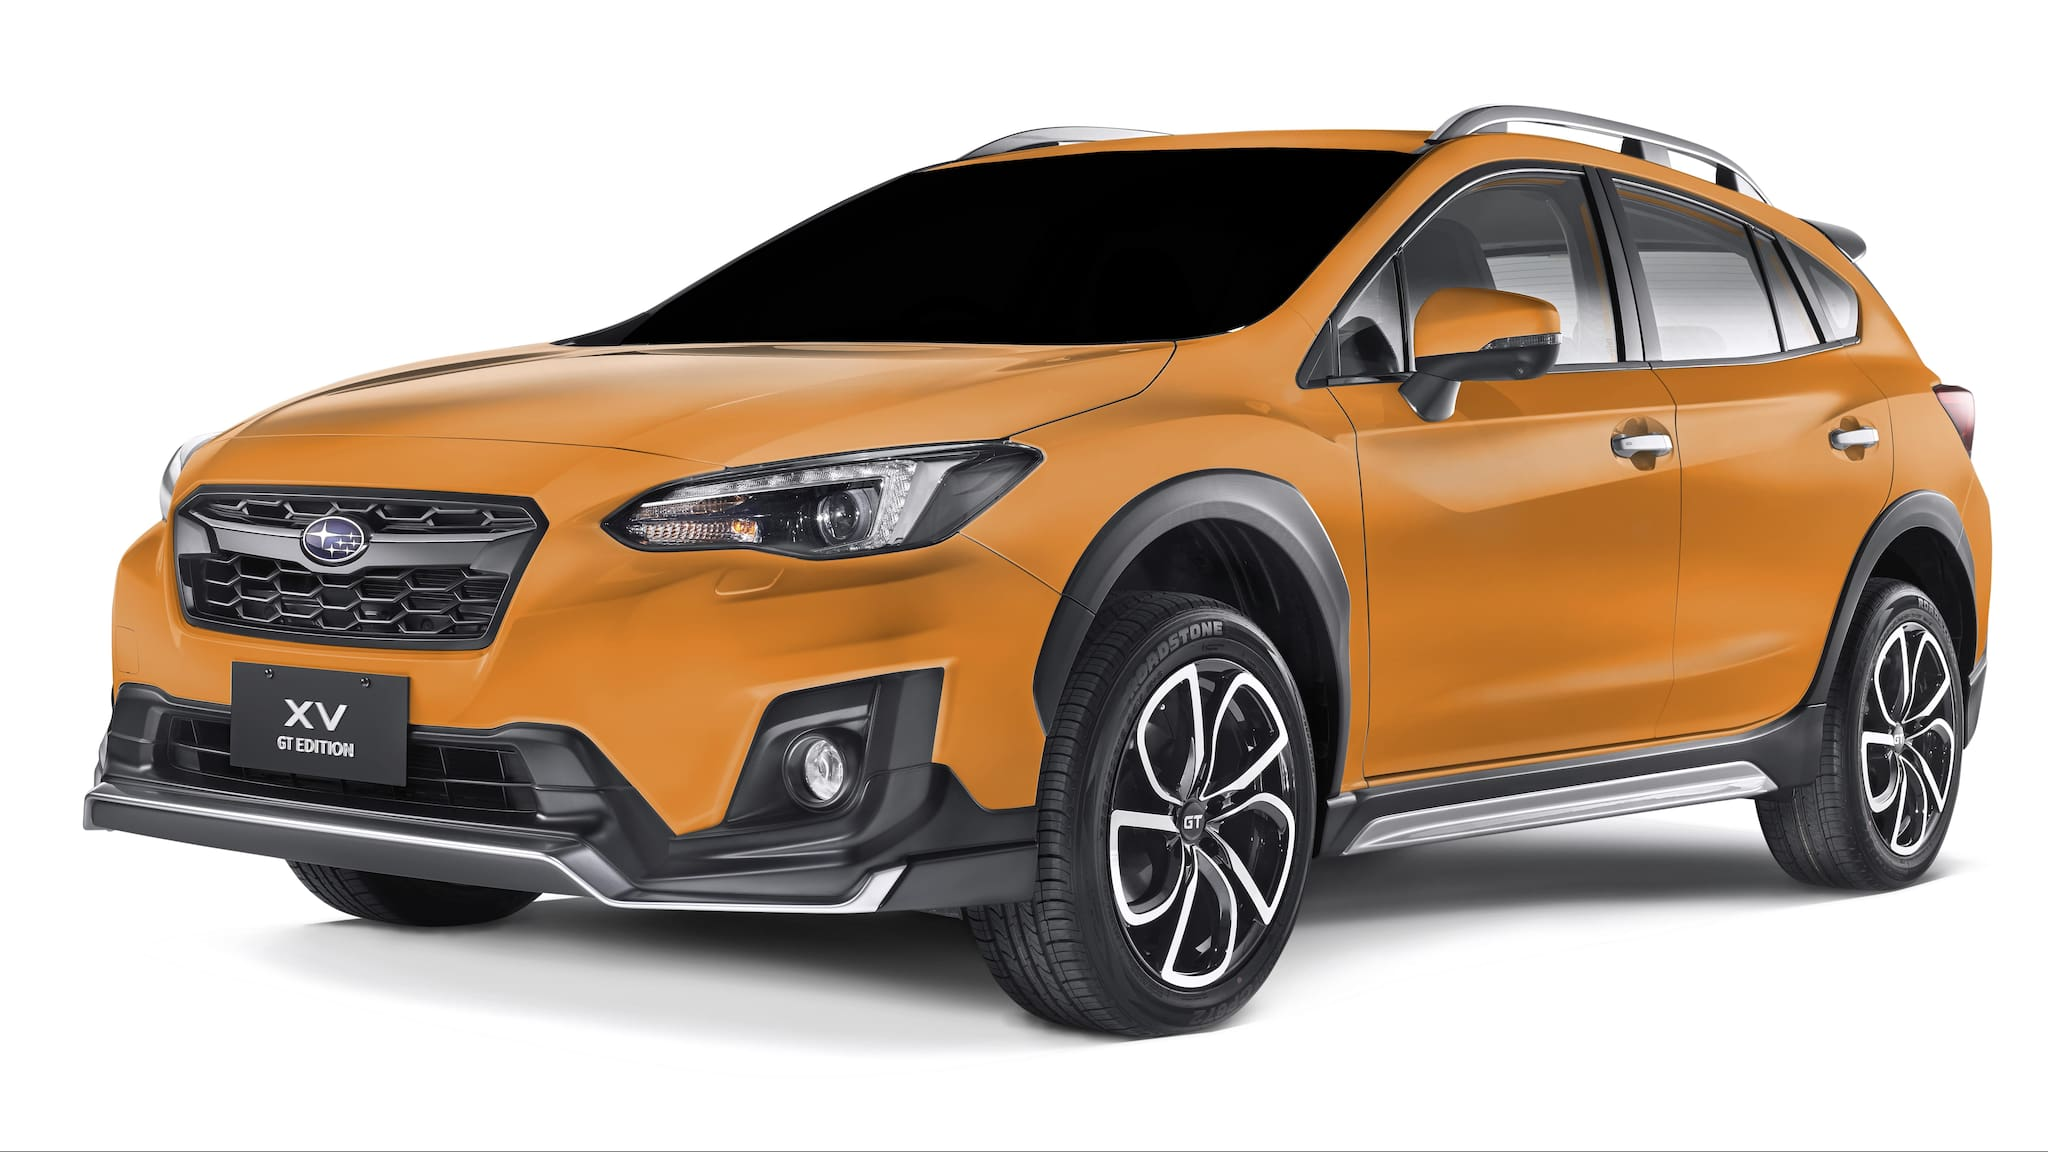 Subaru XV GT Edition Now Ready to Take On PH Roads